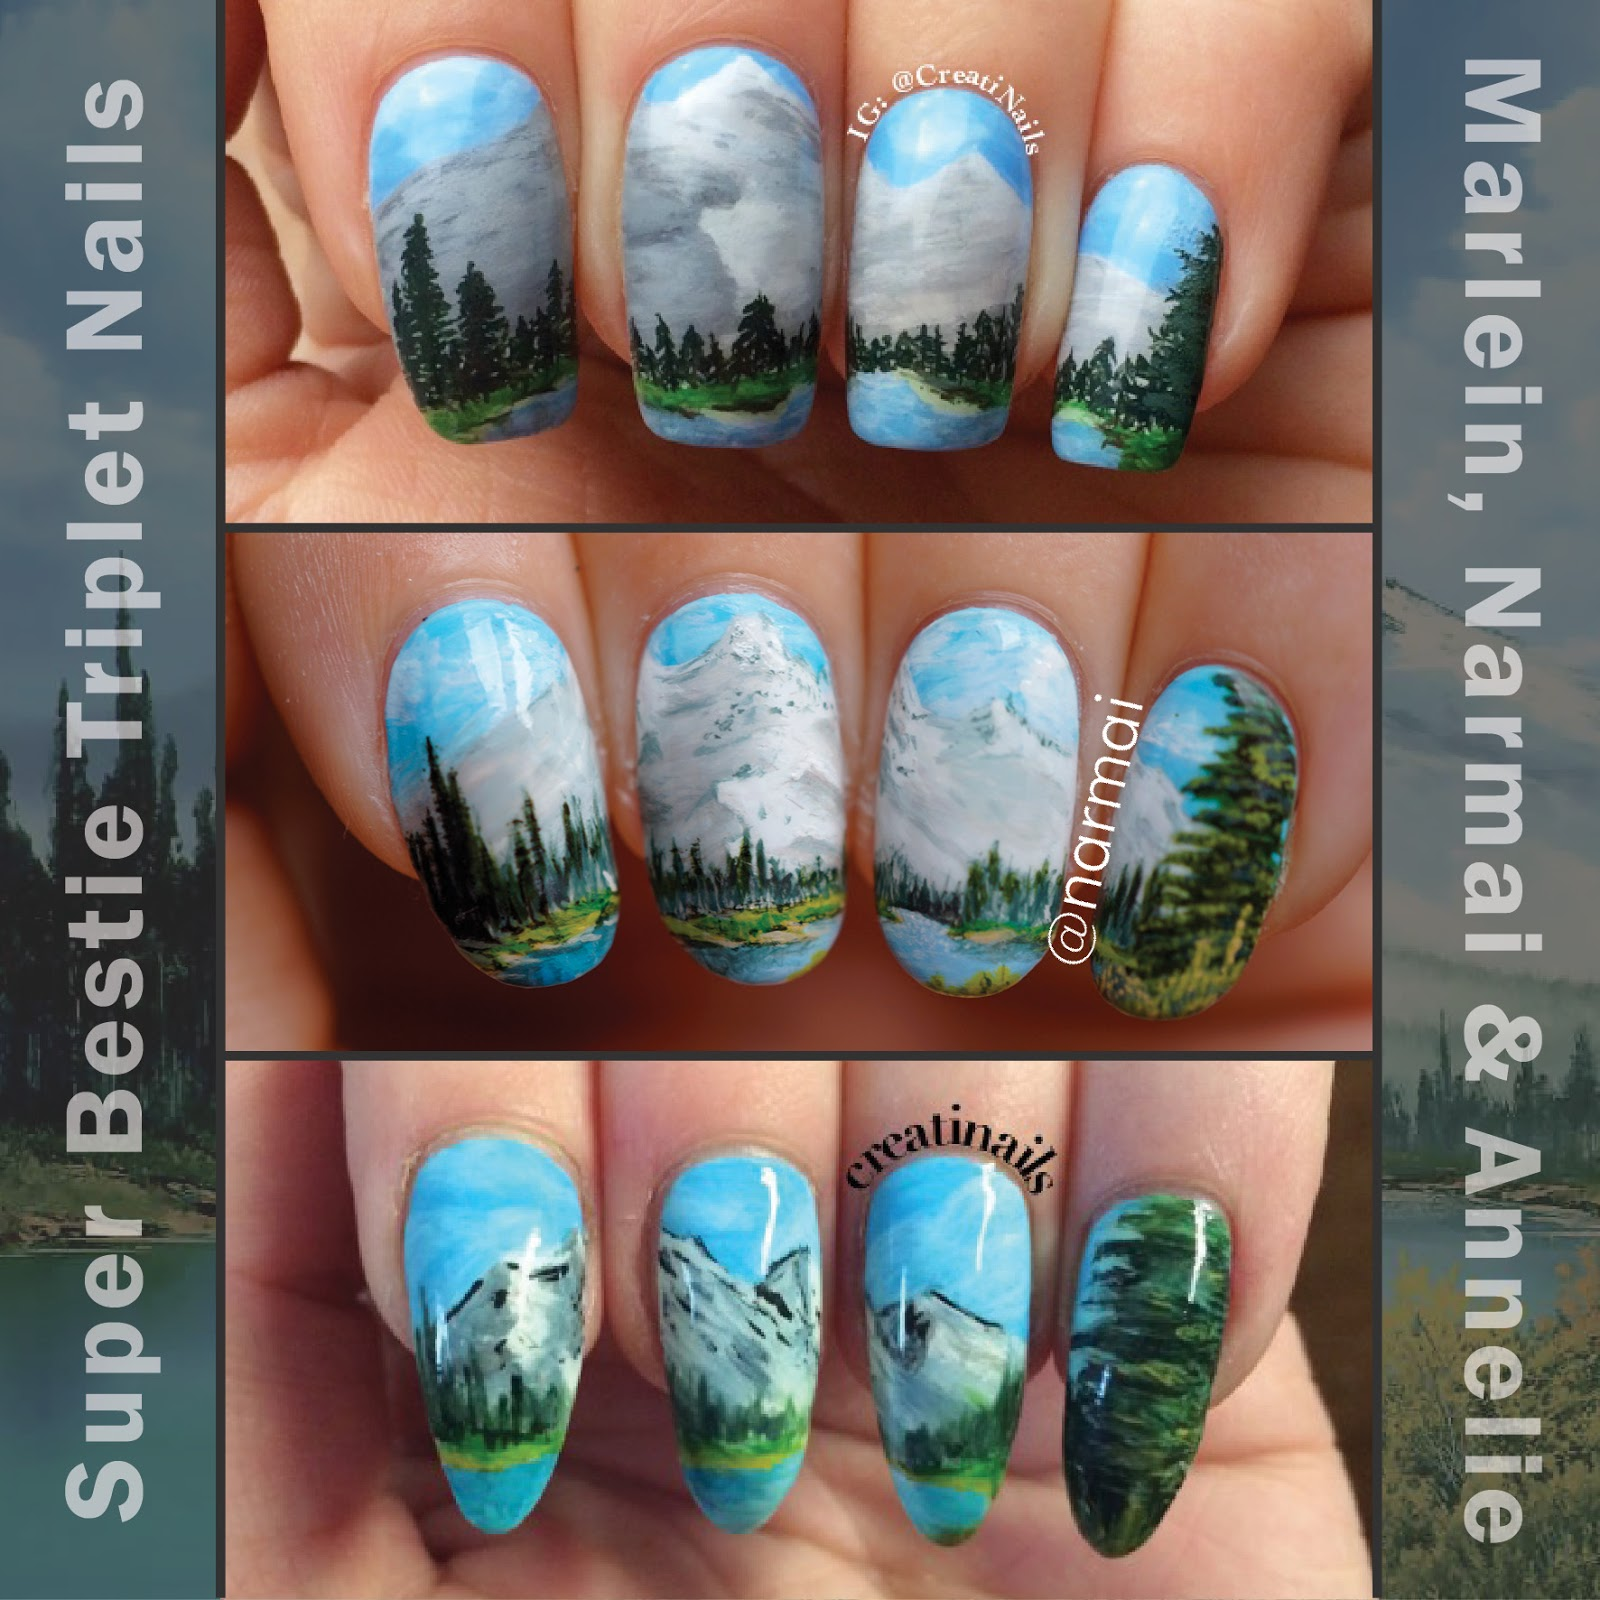 Piggieluv nail art inspired by a bob ross painting nail art inspired by a bob ross painting prinsesfo Images